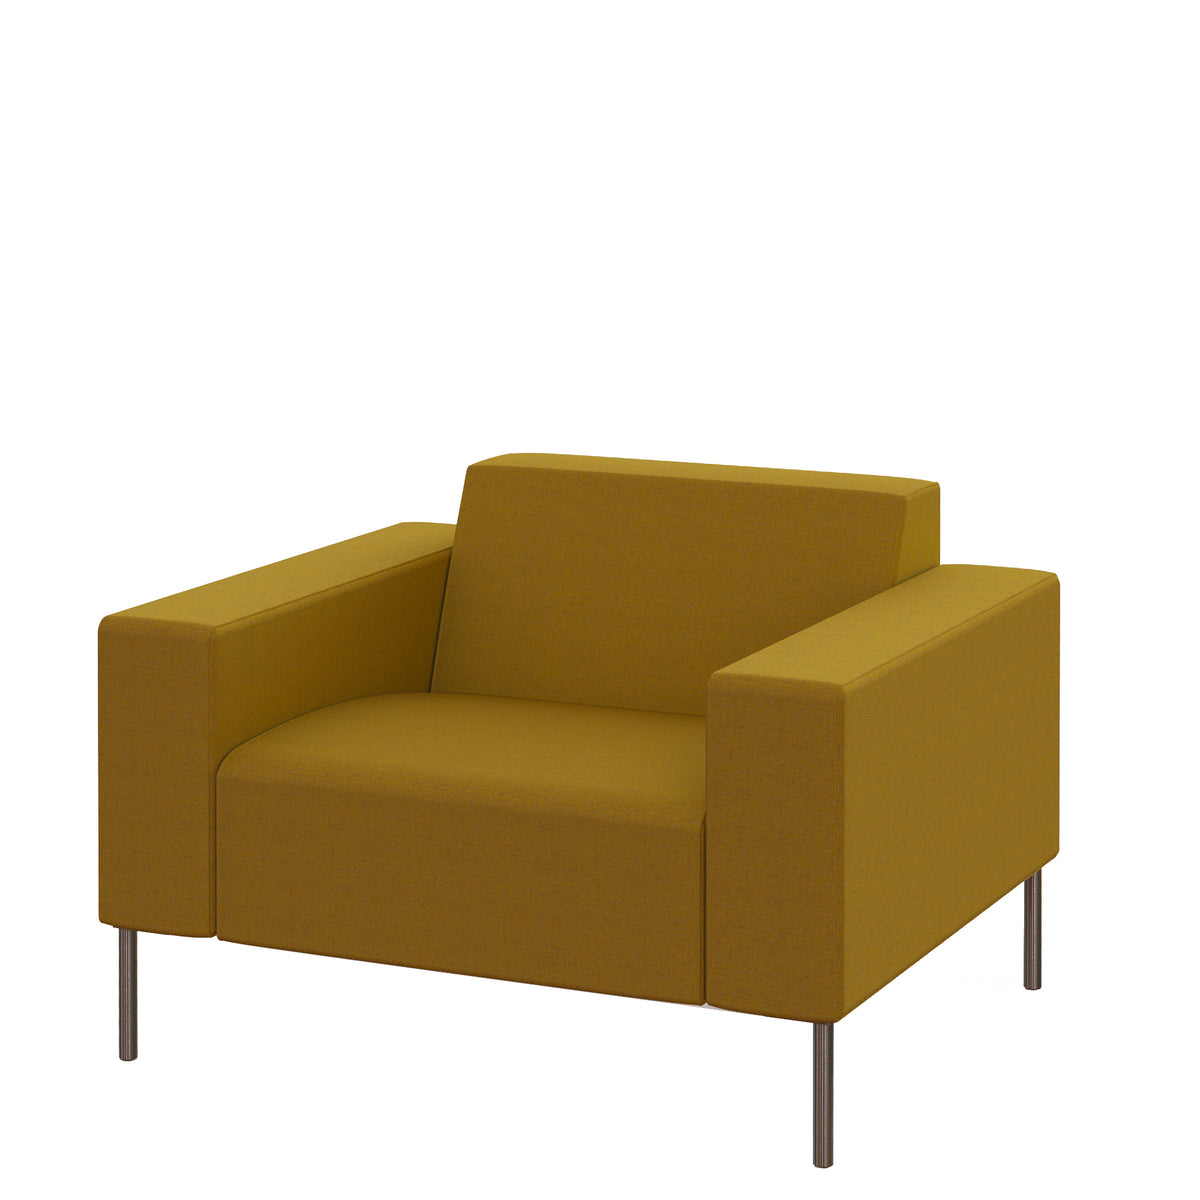 Hitch Mylius HM18 Origin Armchair Brushed Stainless Steel Legs Tooting